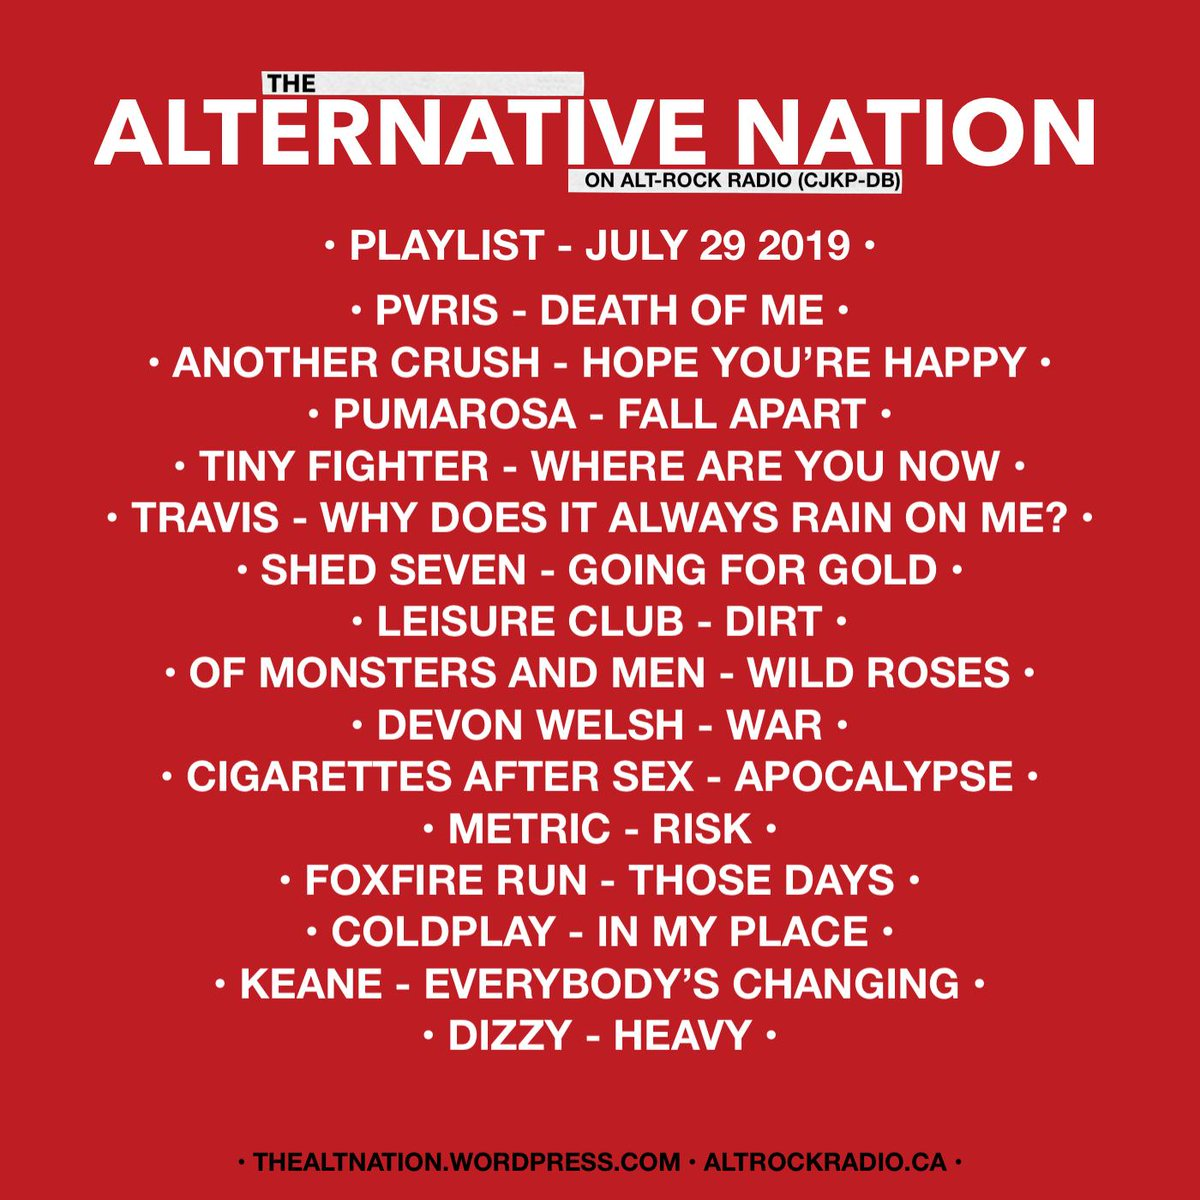 Playlist for last nights edition of The Alternative Nation Radio Show on @altrockradioca What's your track featured? #Playlist #Radio #RadioShow #yourFMalternative #Canada #CanadaRocks #Indie #Alternative #AltRock #Rock #Pop #Musicpic.twitter.com/KBJvLpen4Y